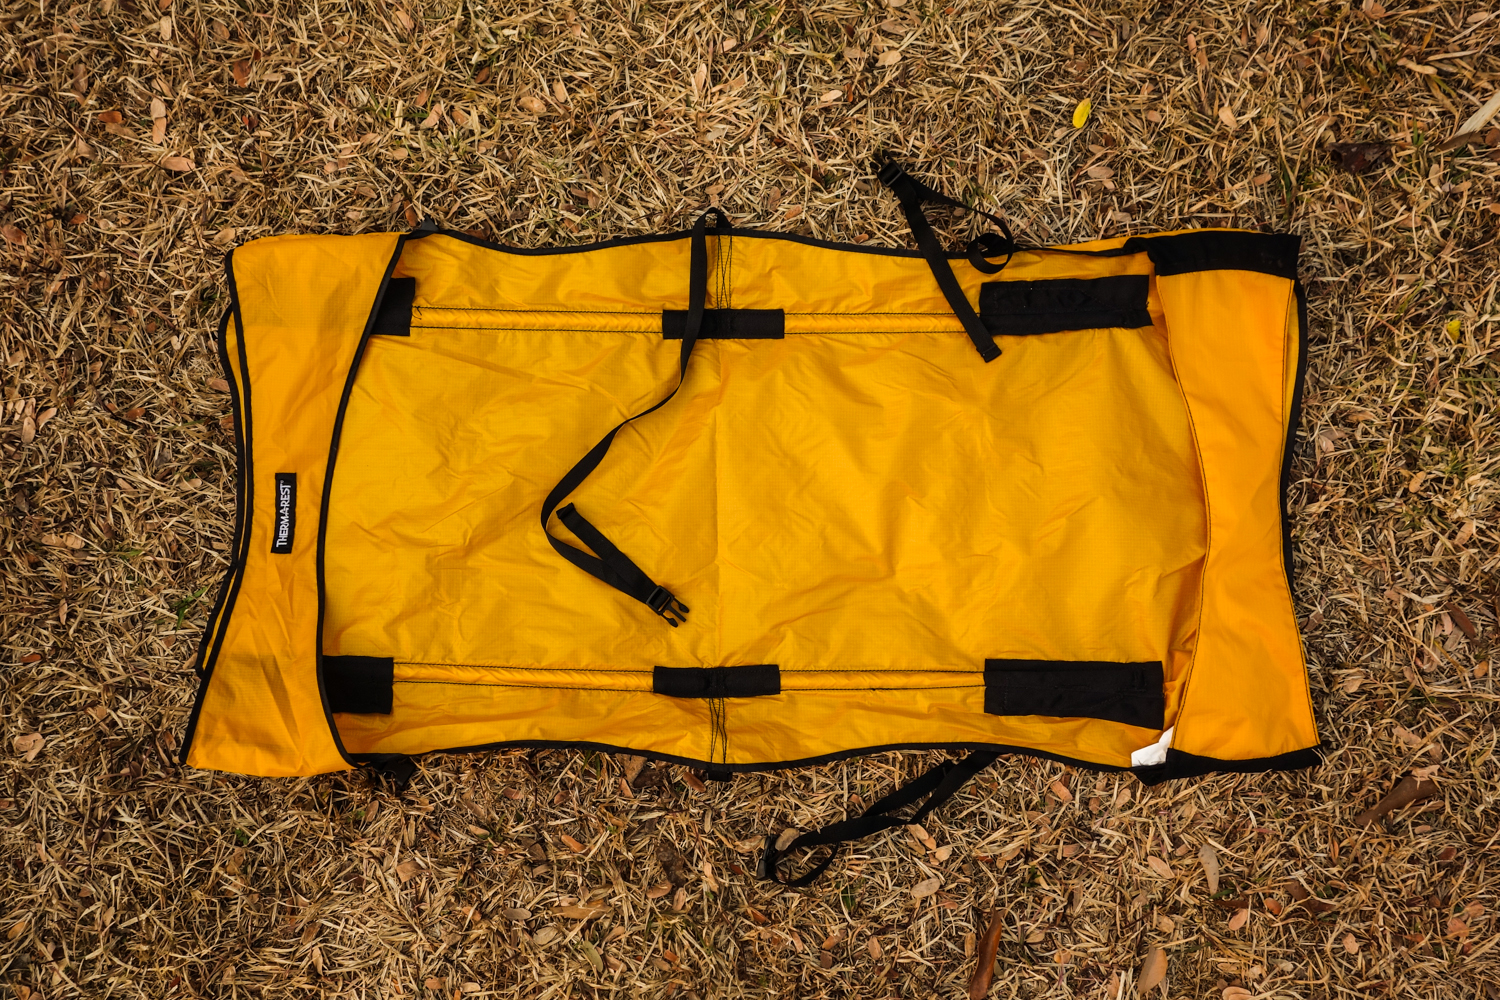 ThermaRest Compack Chair Kit Review  CleverHiker